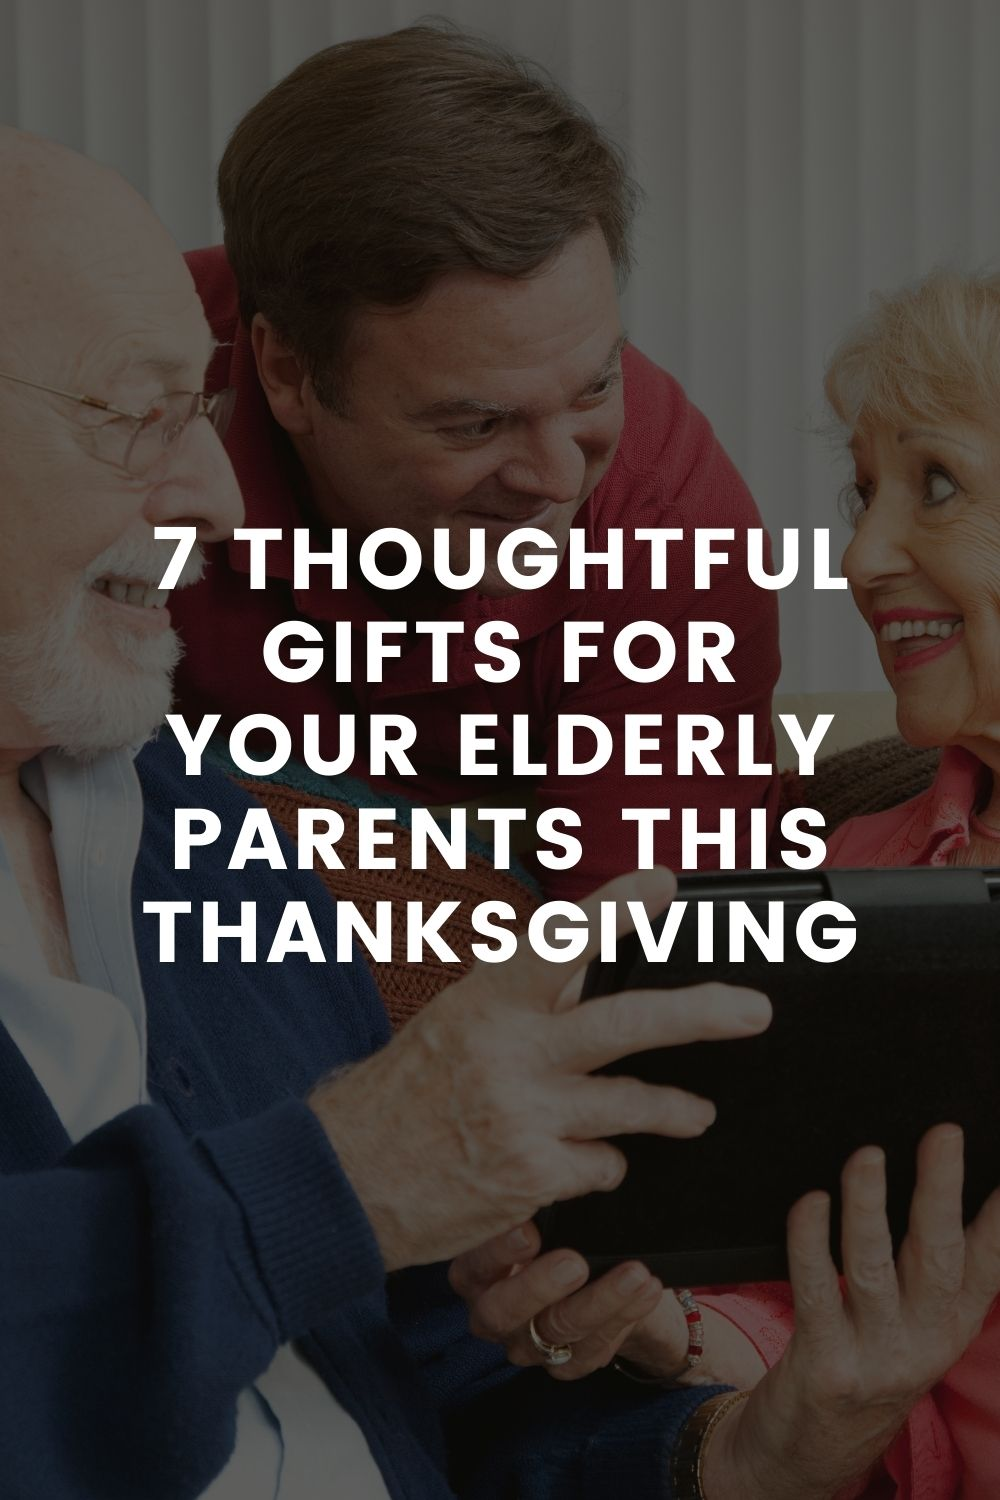 7 Thoughtful Gifts for your Elderly Parents this Thanksgiving